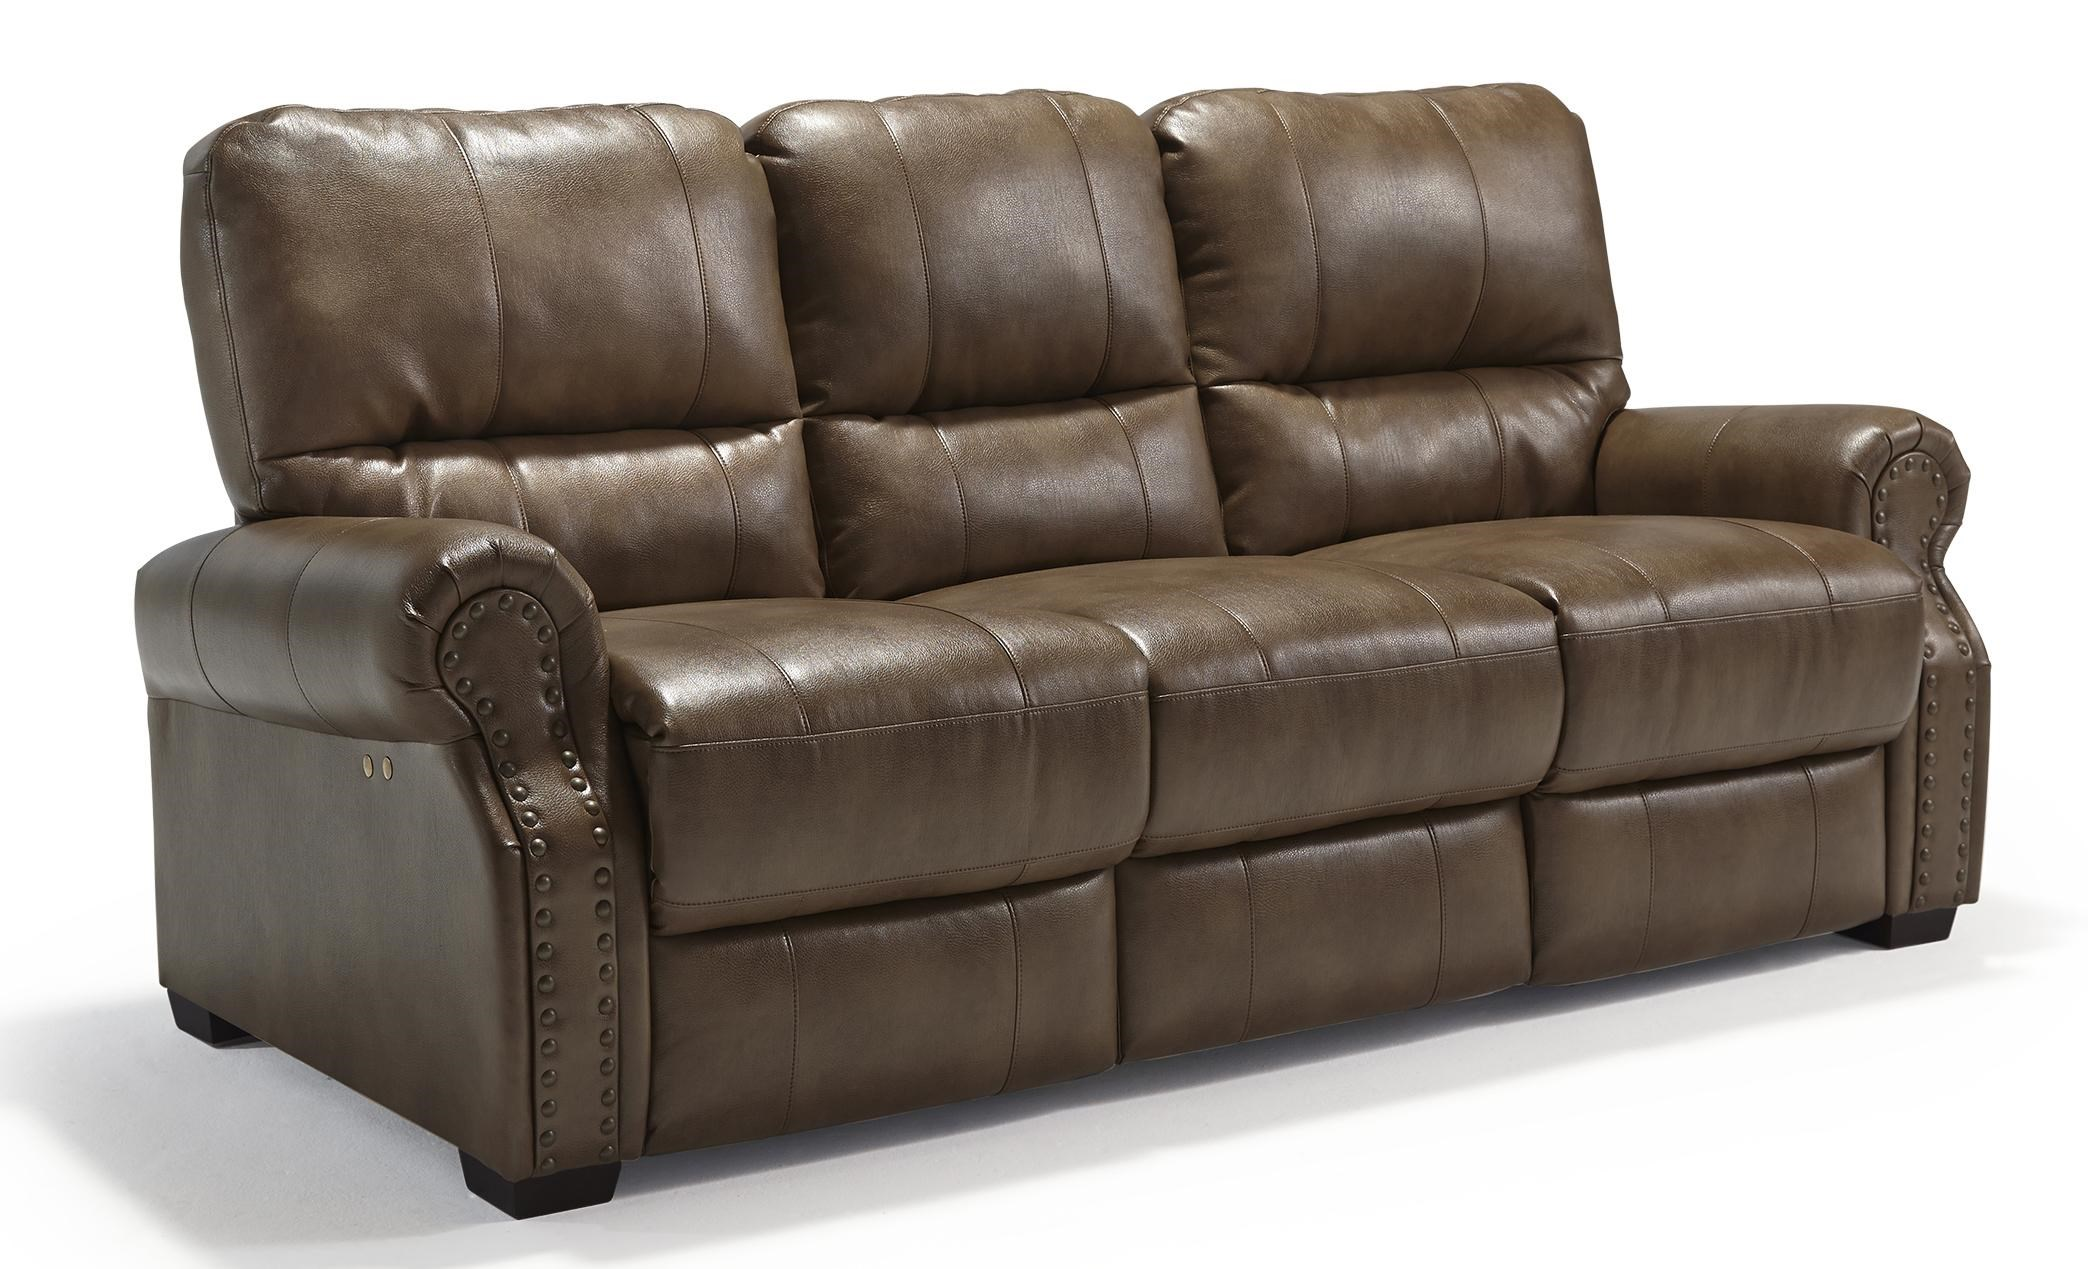 ... Best Home Furnishings Lander Power Reclining Sofa. Bonded Leather Shown No Longer Available from Manufacturer  sc 1 st  Great American Home Store & Best Home Furnishings Lander Transitional Power Reclining Sofa ... islam-shia.org